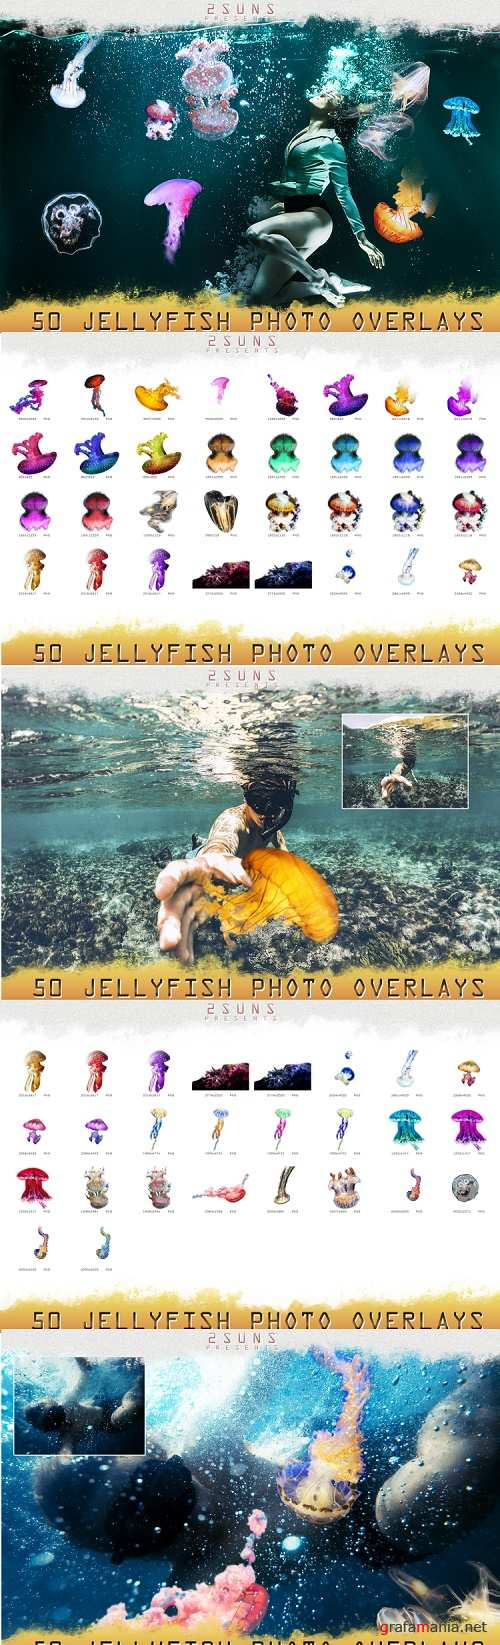 50 jellyfish overlays Clipart, PNG, transparent - 317804